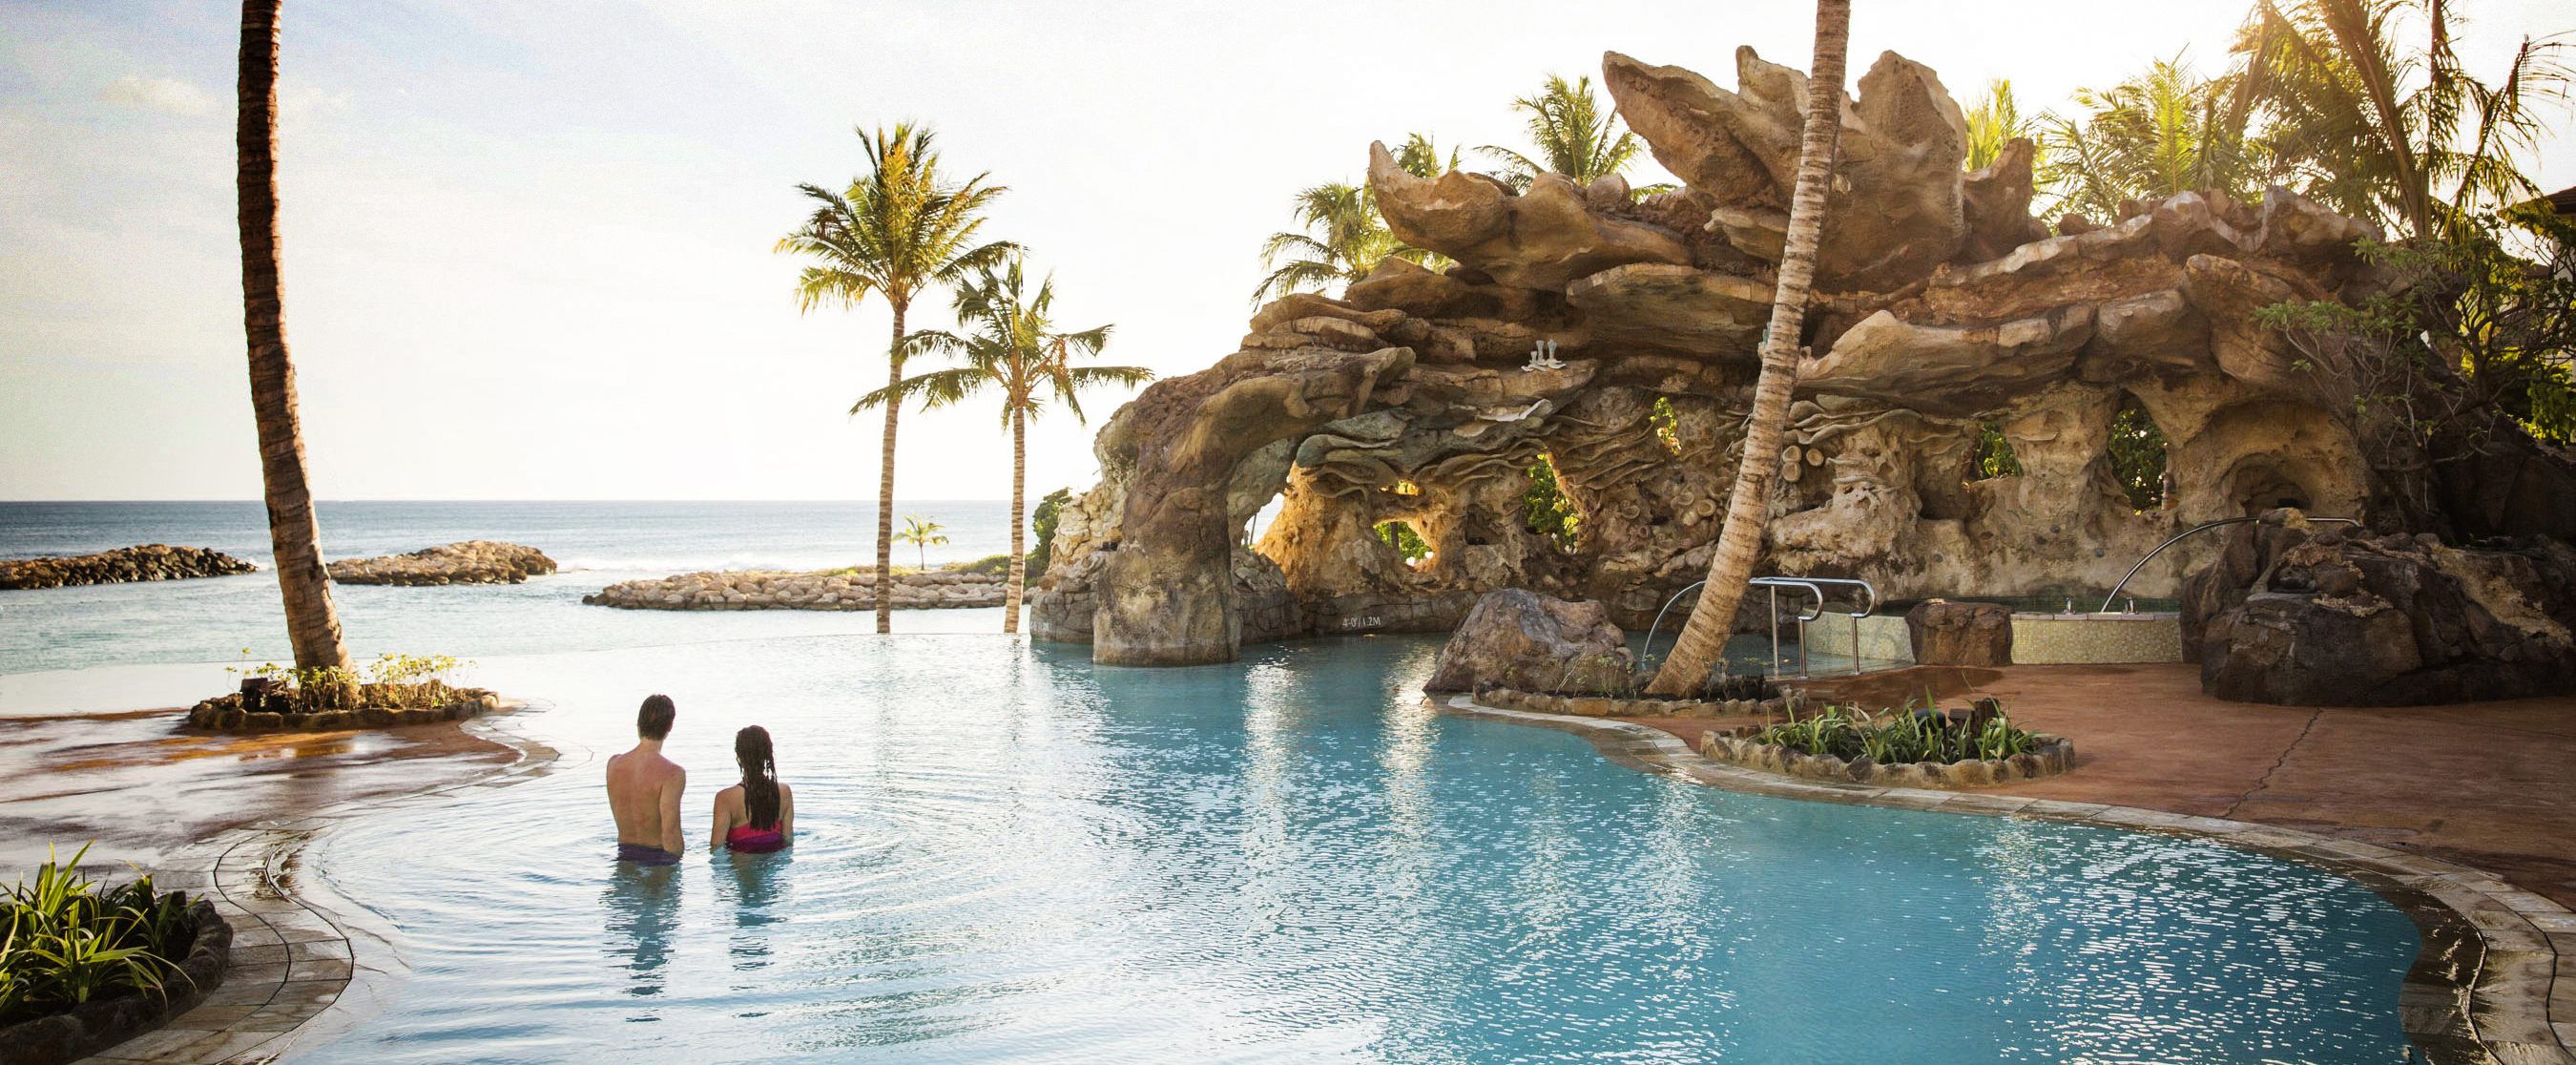 A couple in Ka Maka Grotto, the infinity-edge family pool at Aulani